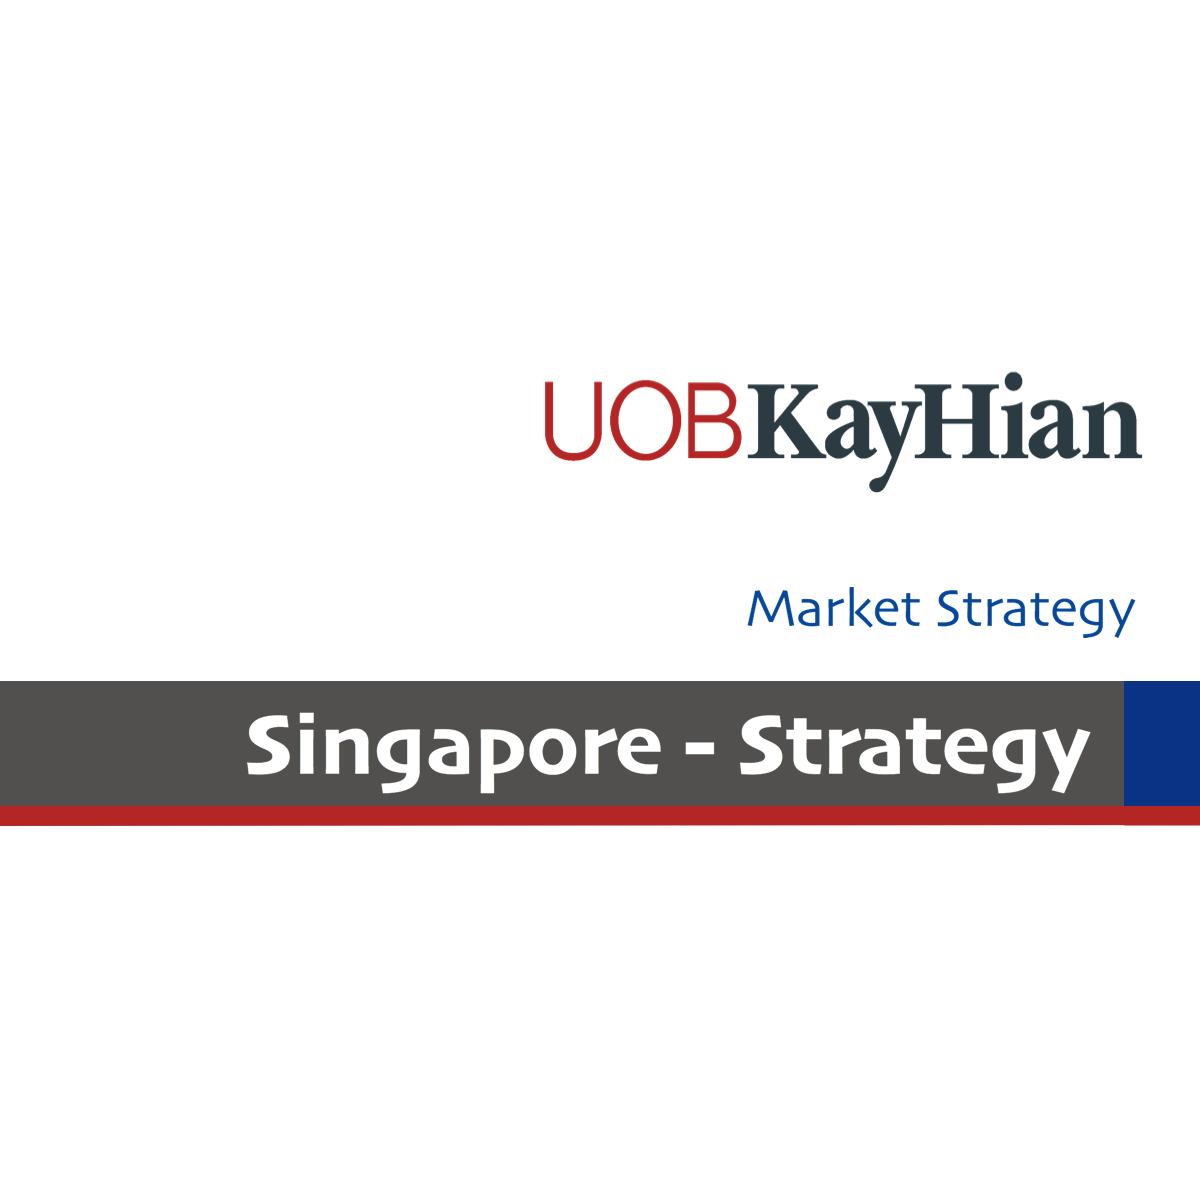 Singapore Strategy - UOB Kay Hian 2017-02-08: Dividend Plays To Crow About